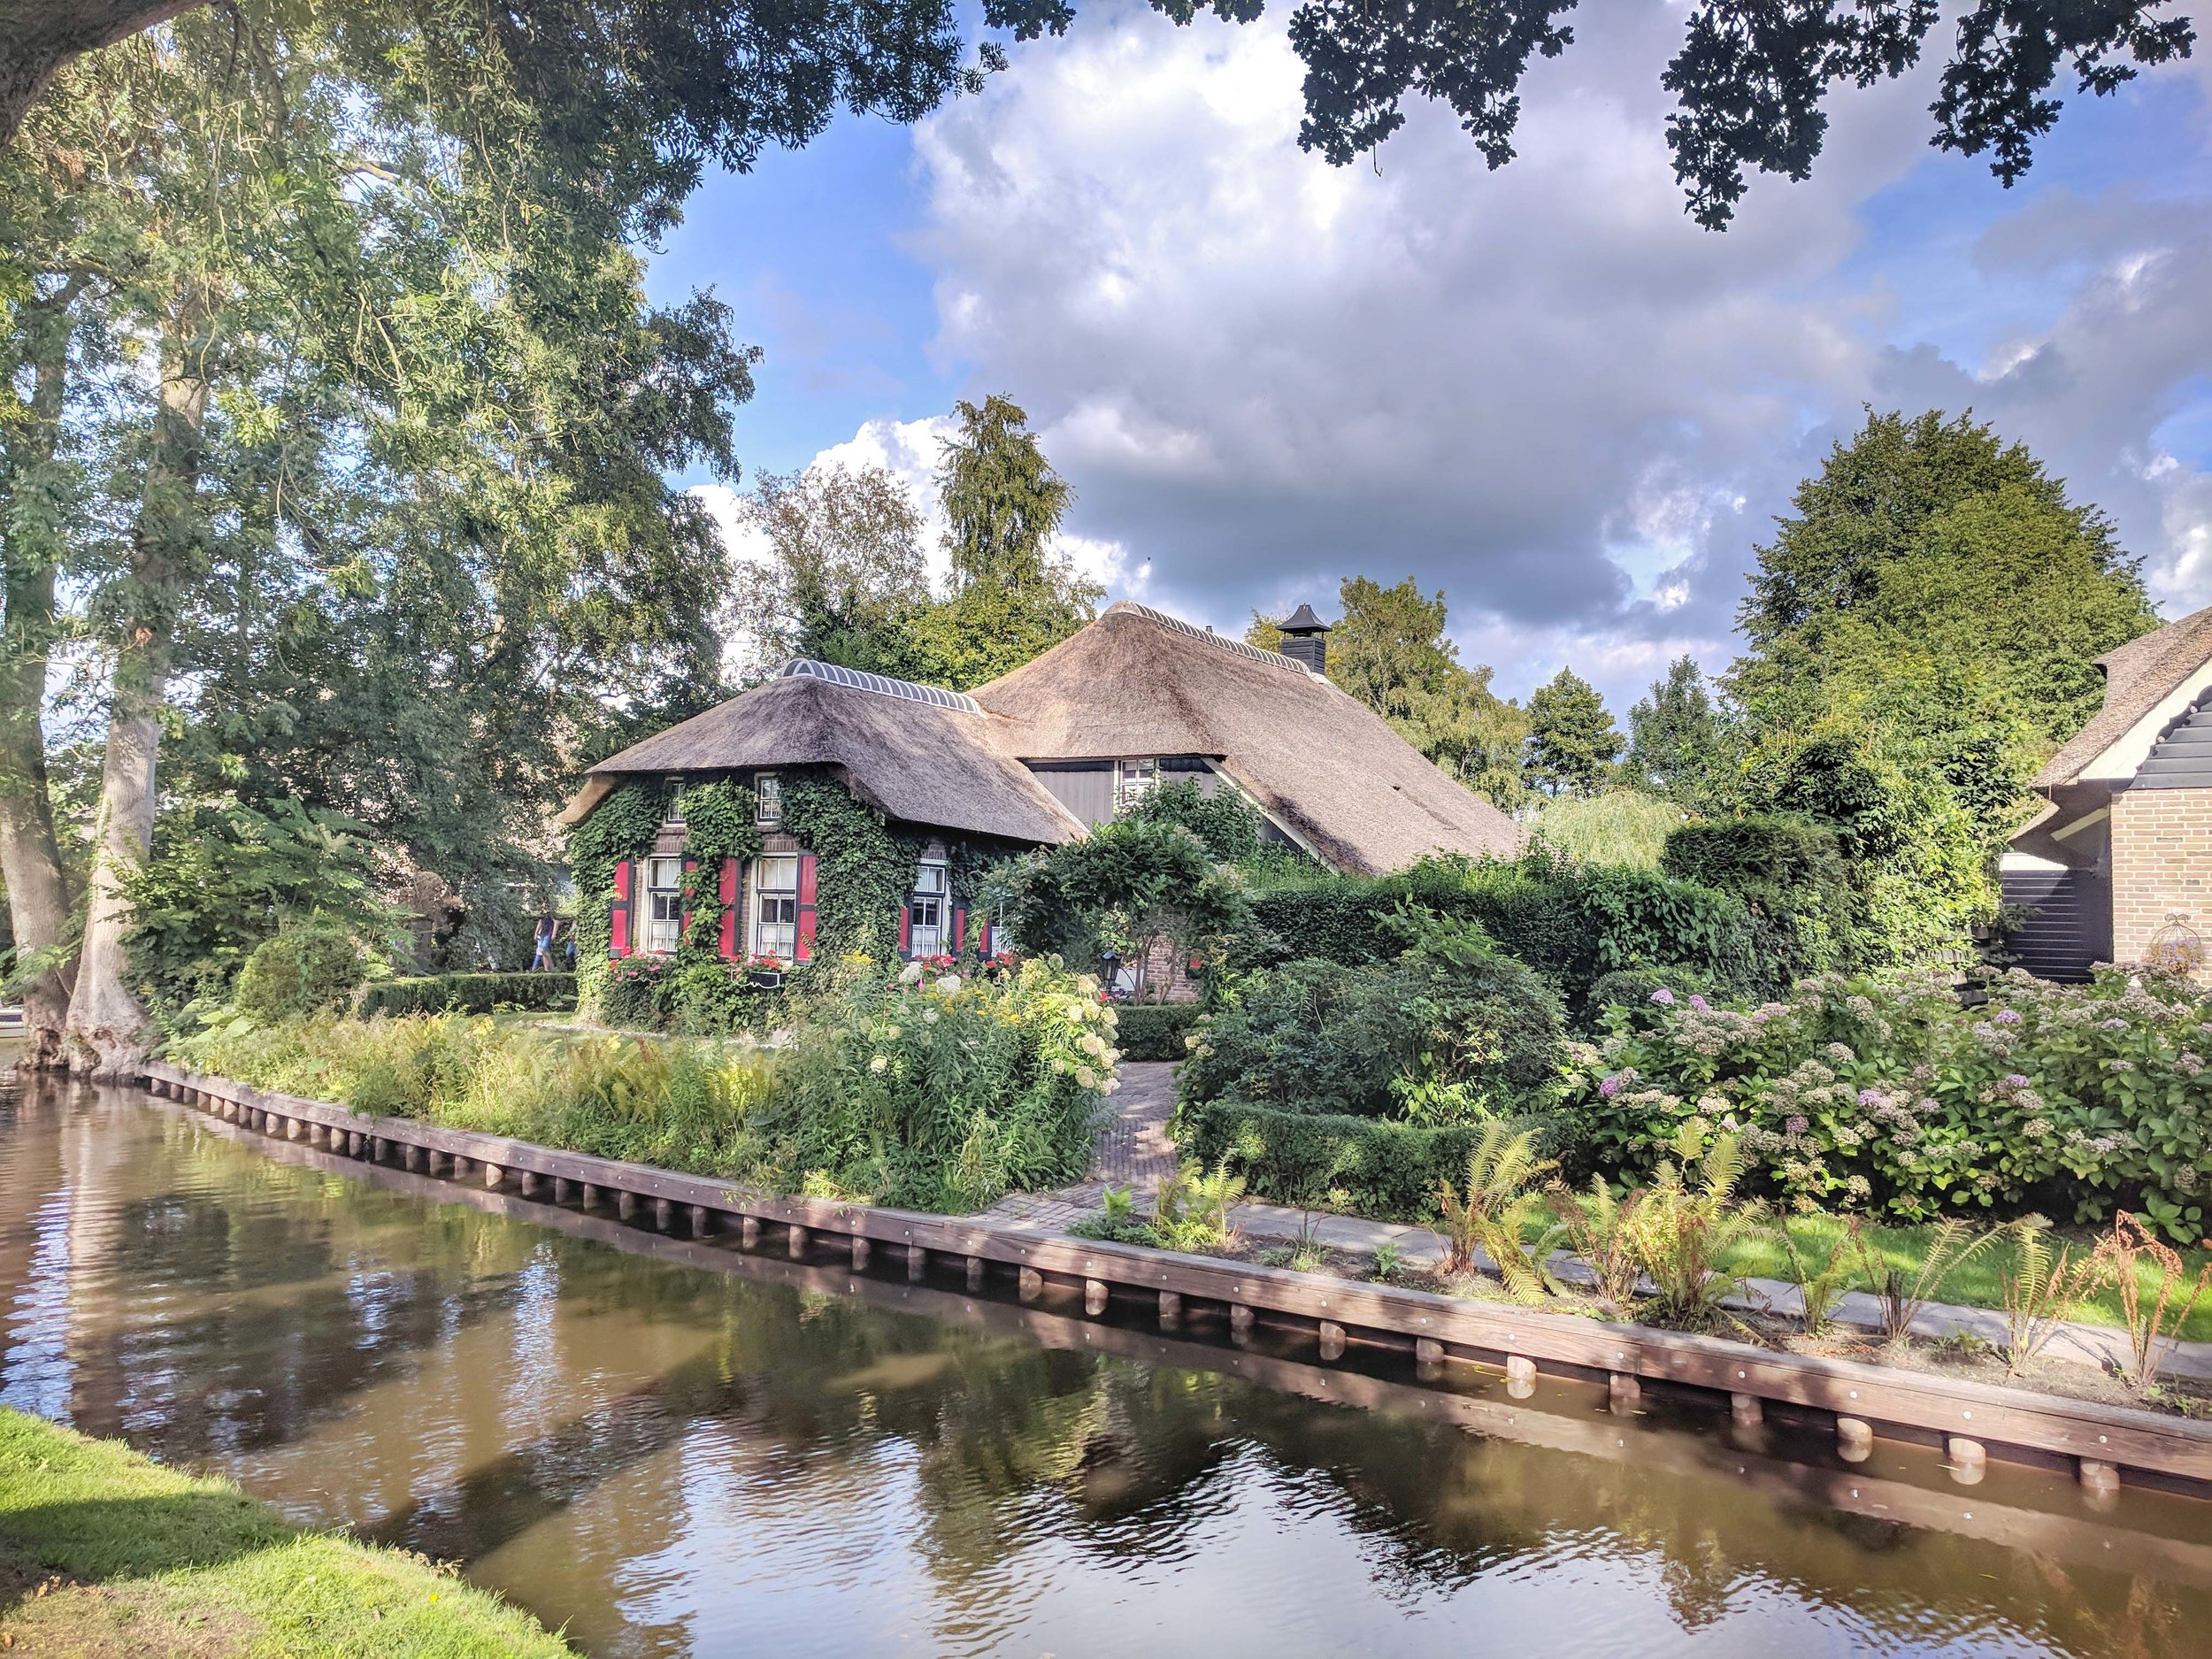 Giethoorn Thatched Houses, The Netherlands.jpg